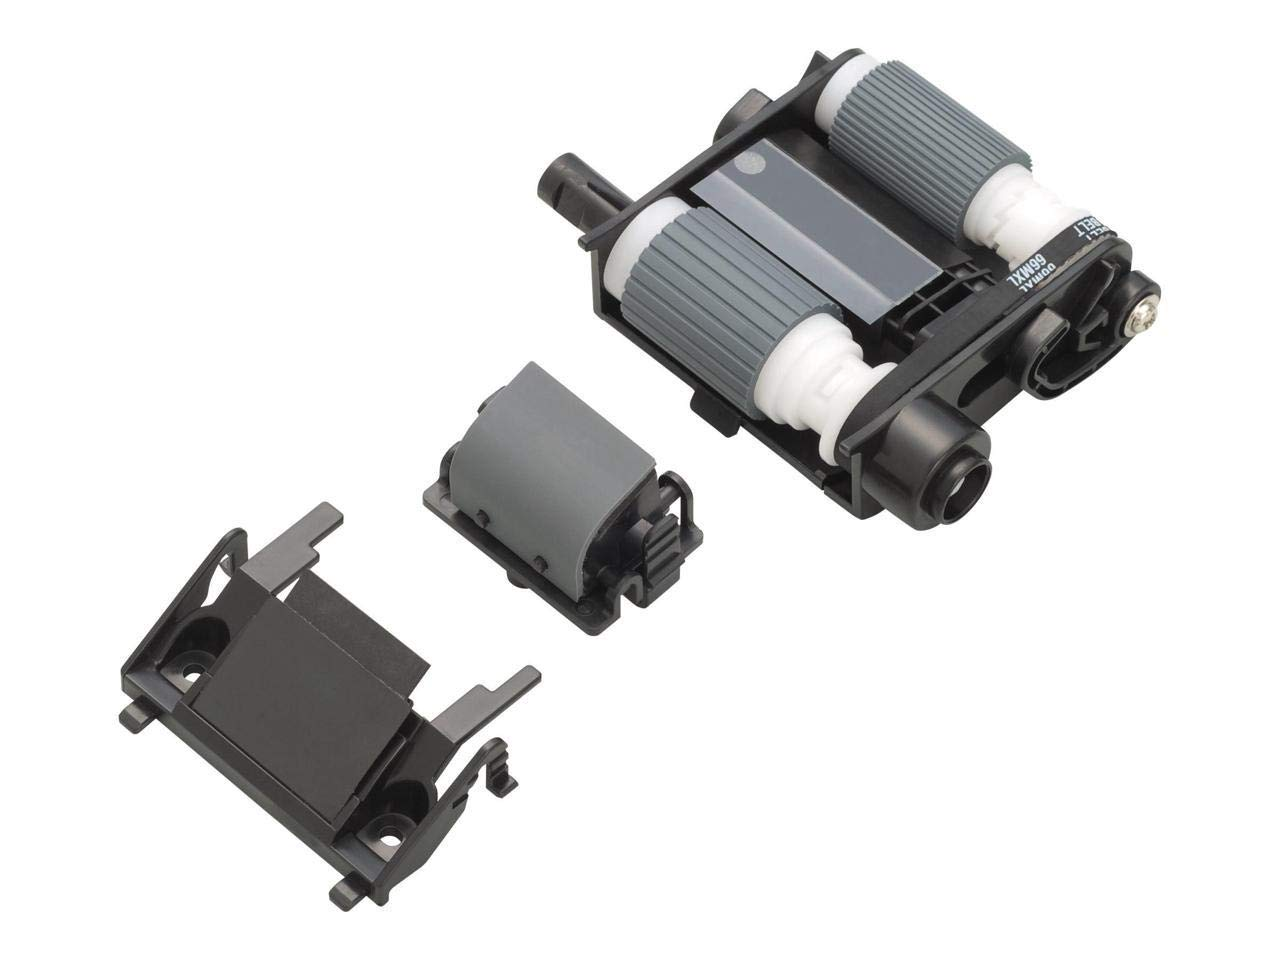 Epson Replacement Roller Assembly Kit for Workforce DS-7500 & DS-6500 Document Scanners by Epson